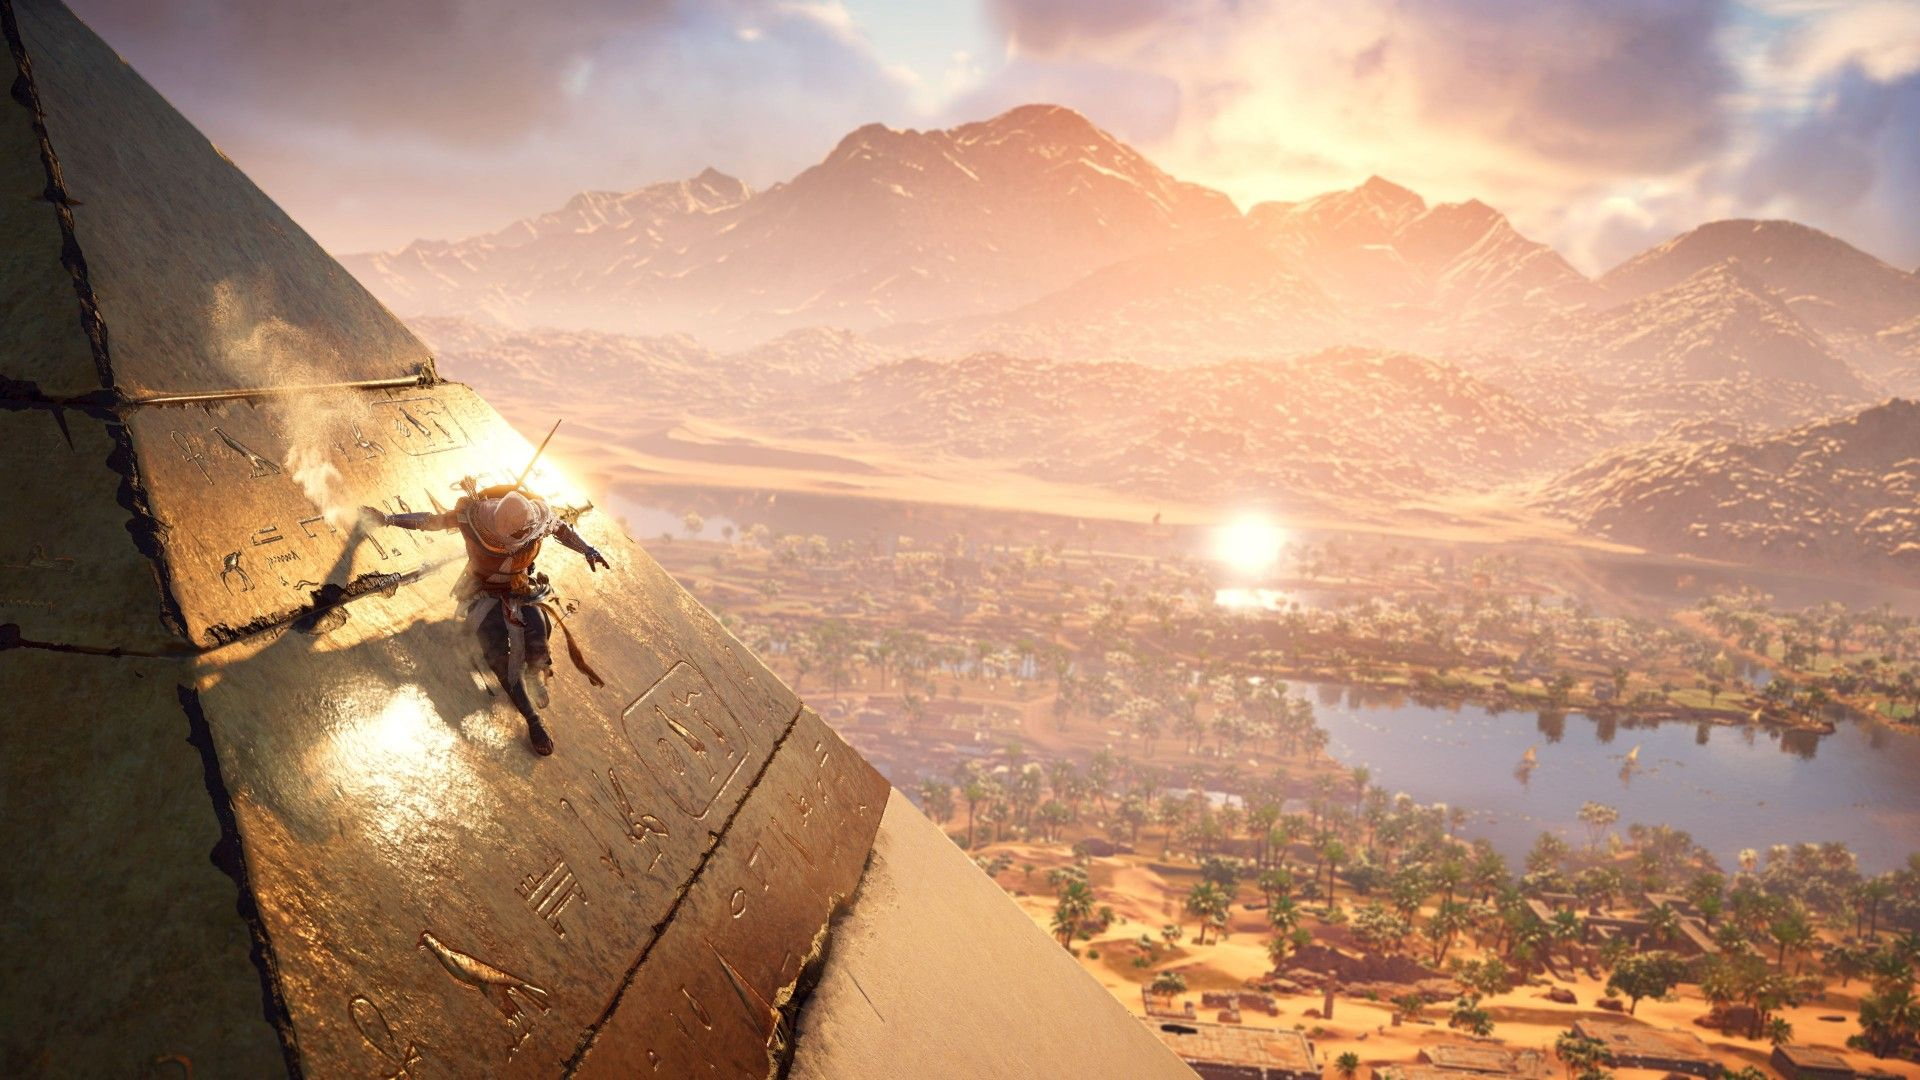 Download Wallpapers Of Assassin S Creed Origins 4k Games 7754 Available In Hd 4k Resolutions Fo Assassins Creed Assassins Creed Origins Assassin S Creed